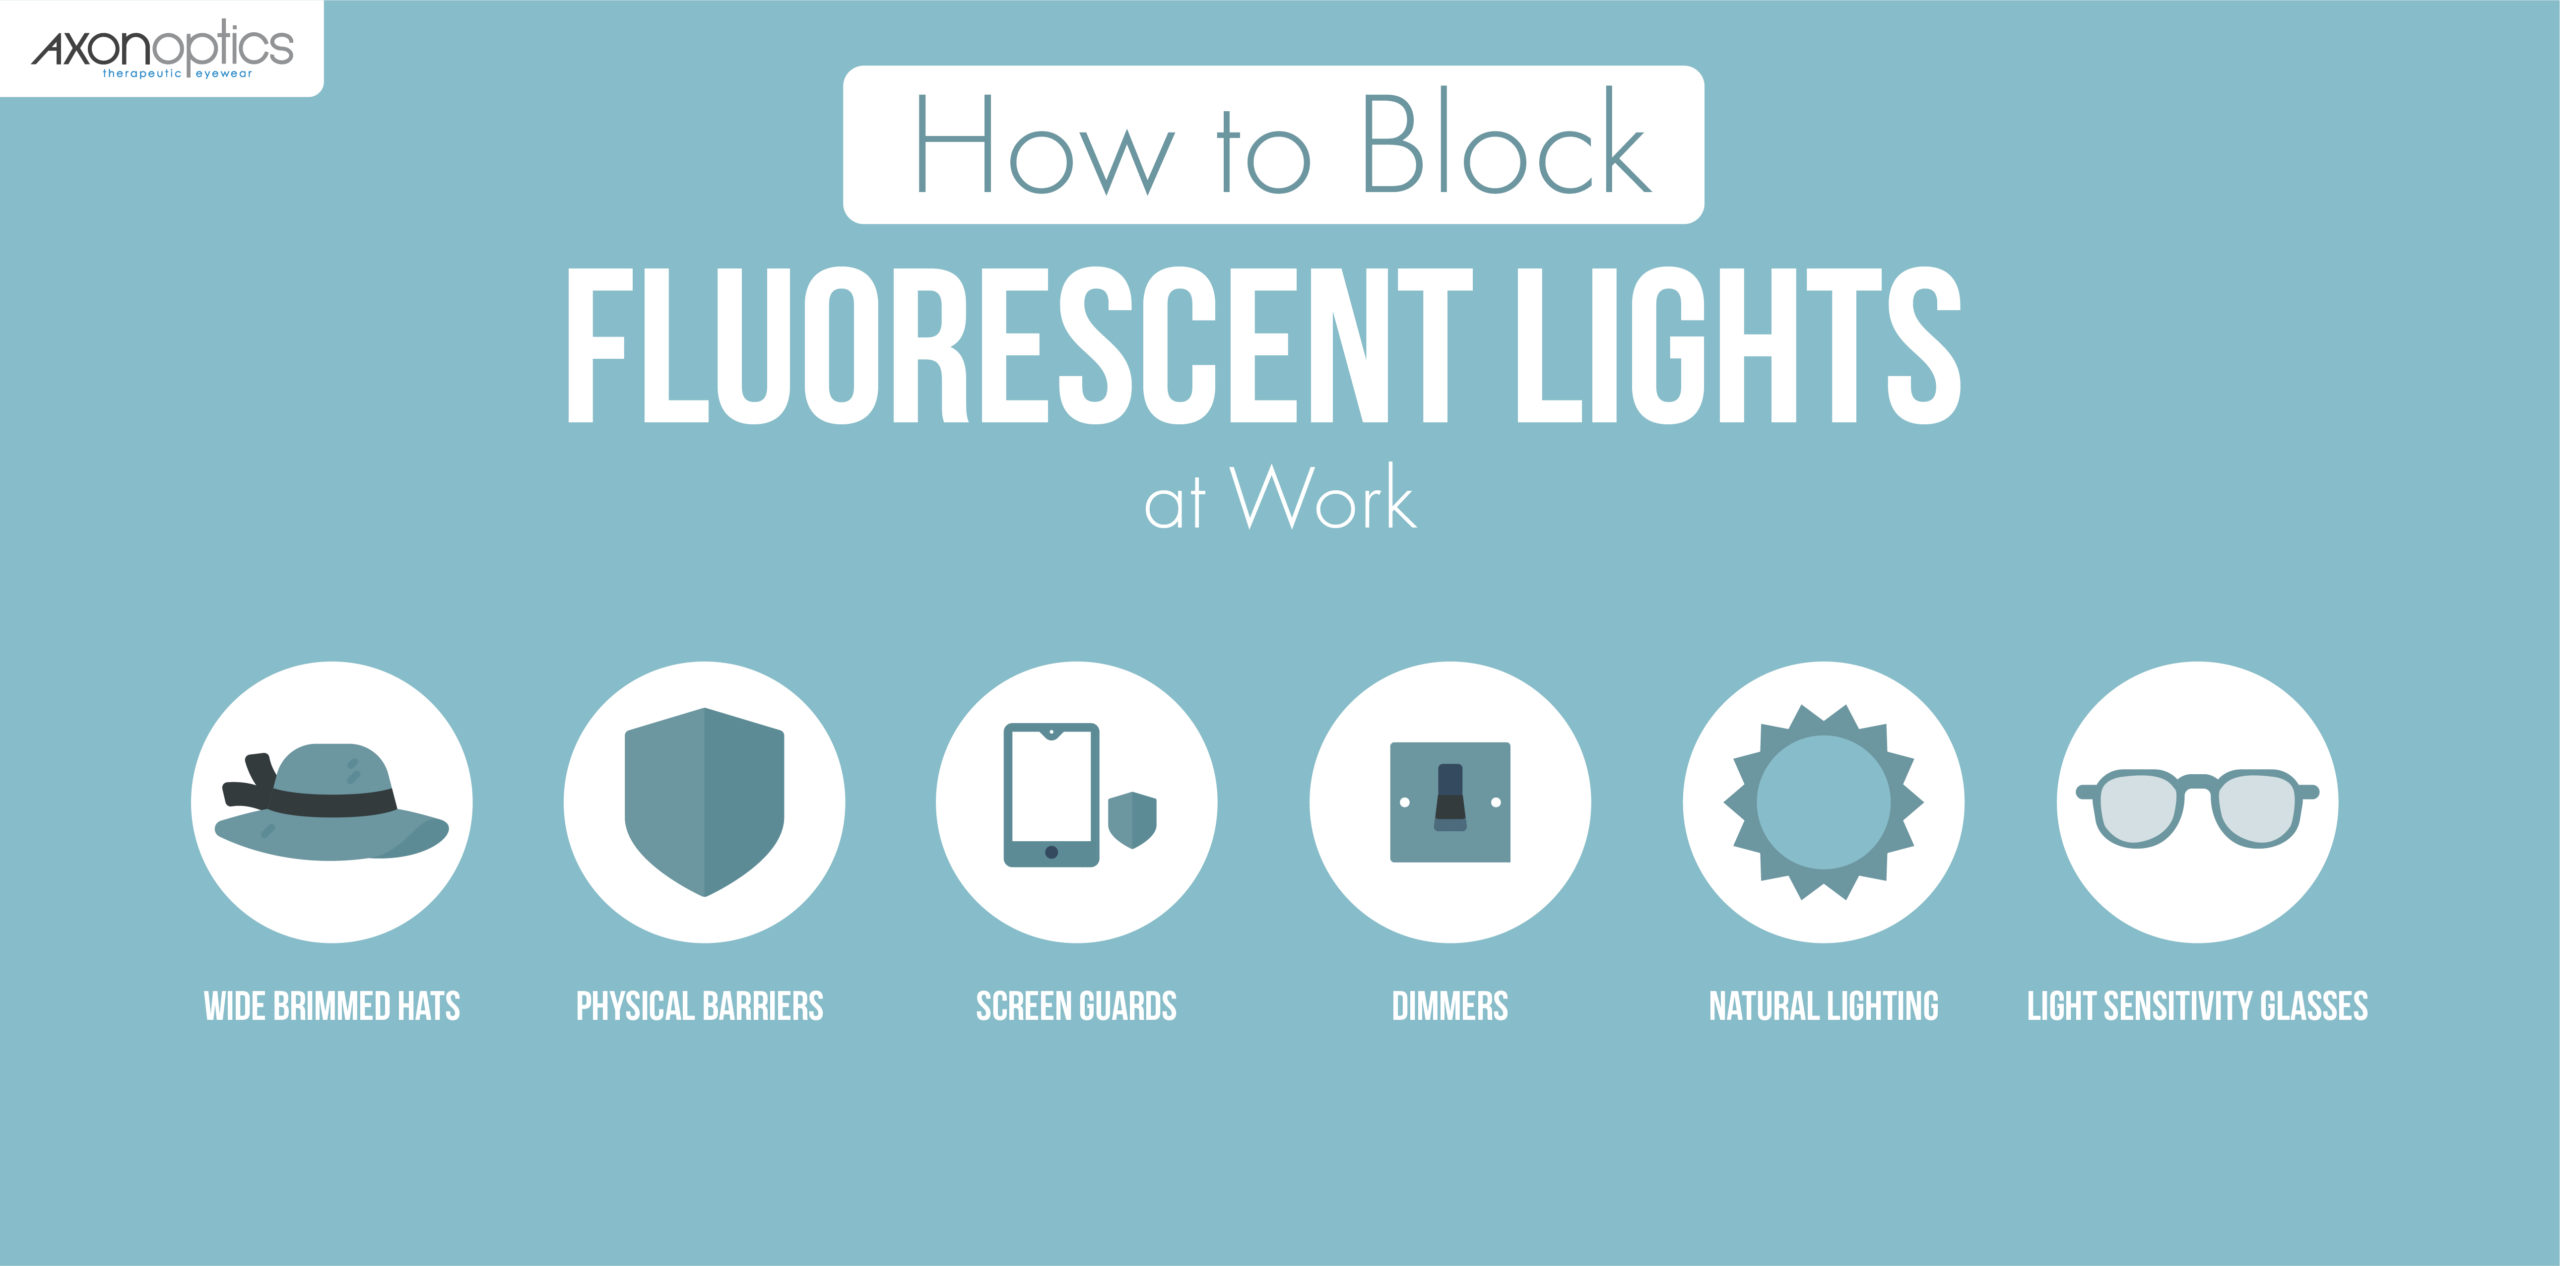 How to block fluorescent lights at work